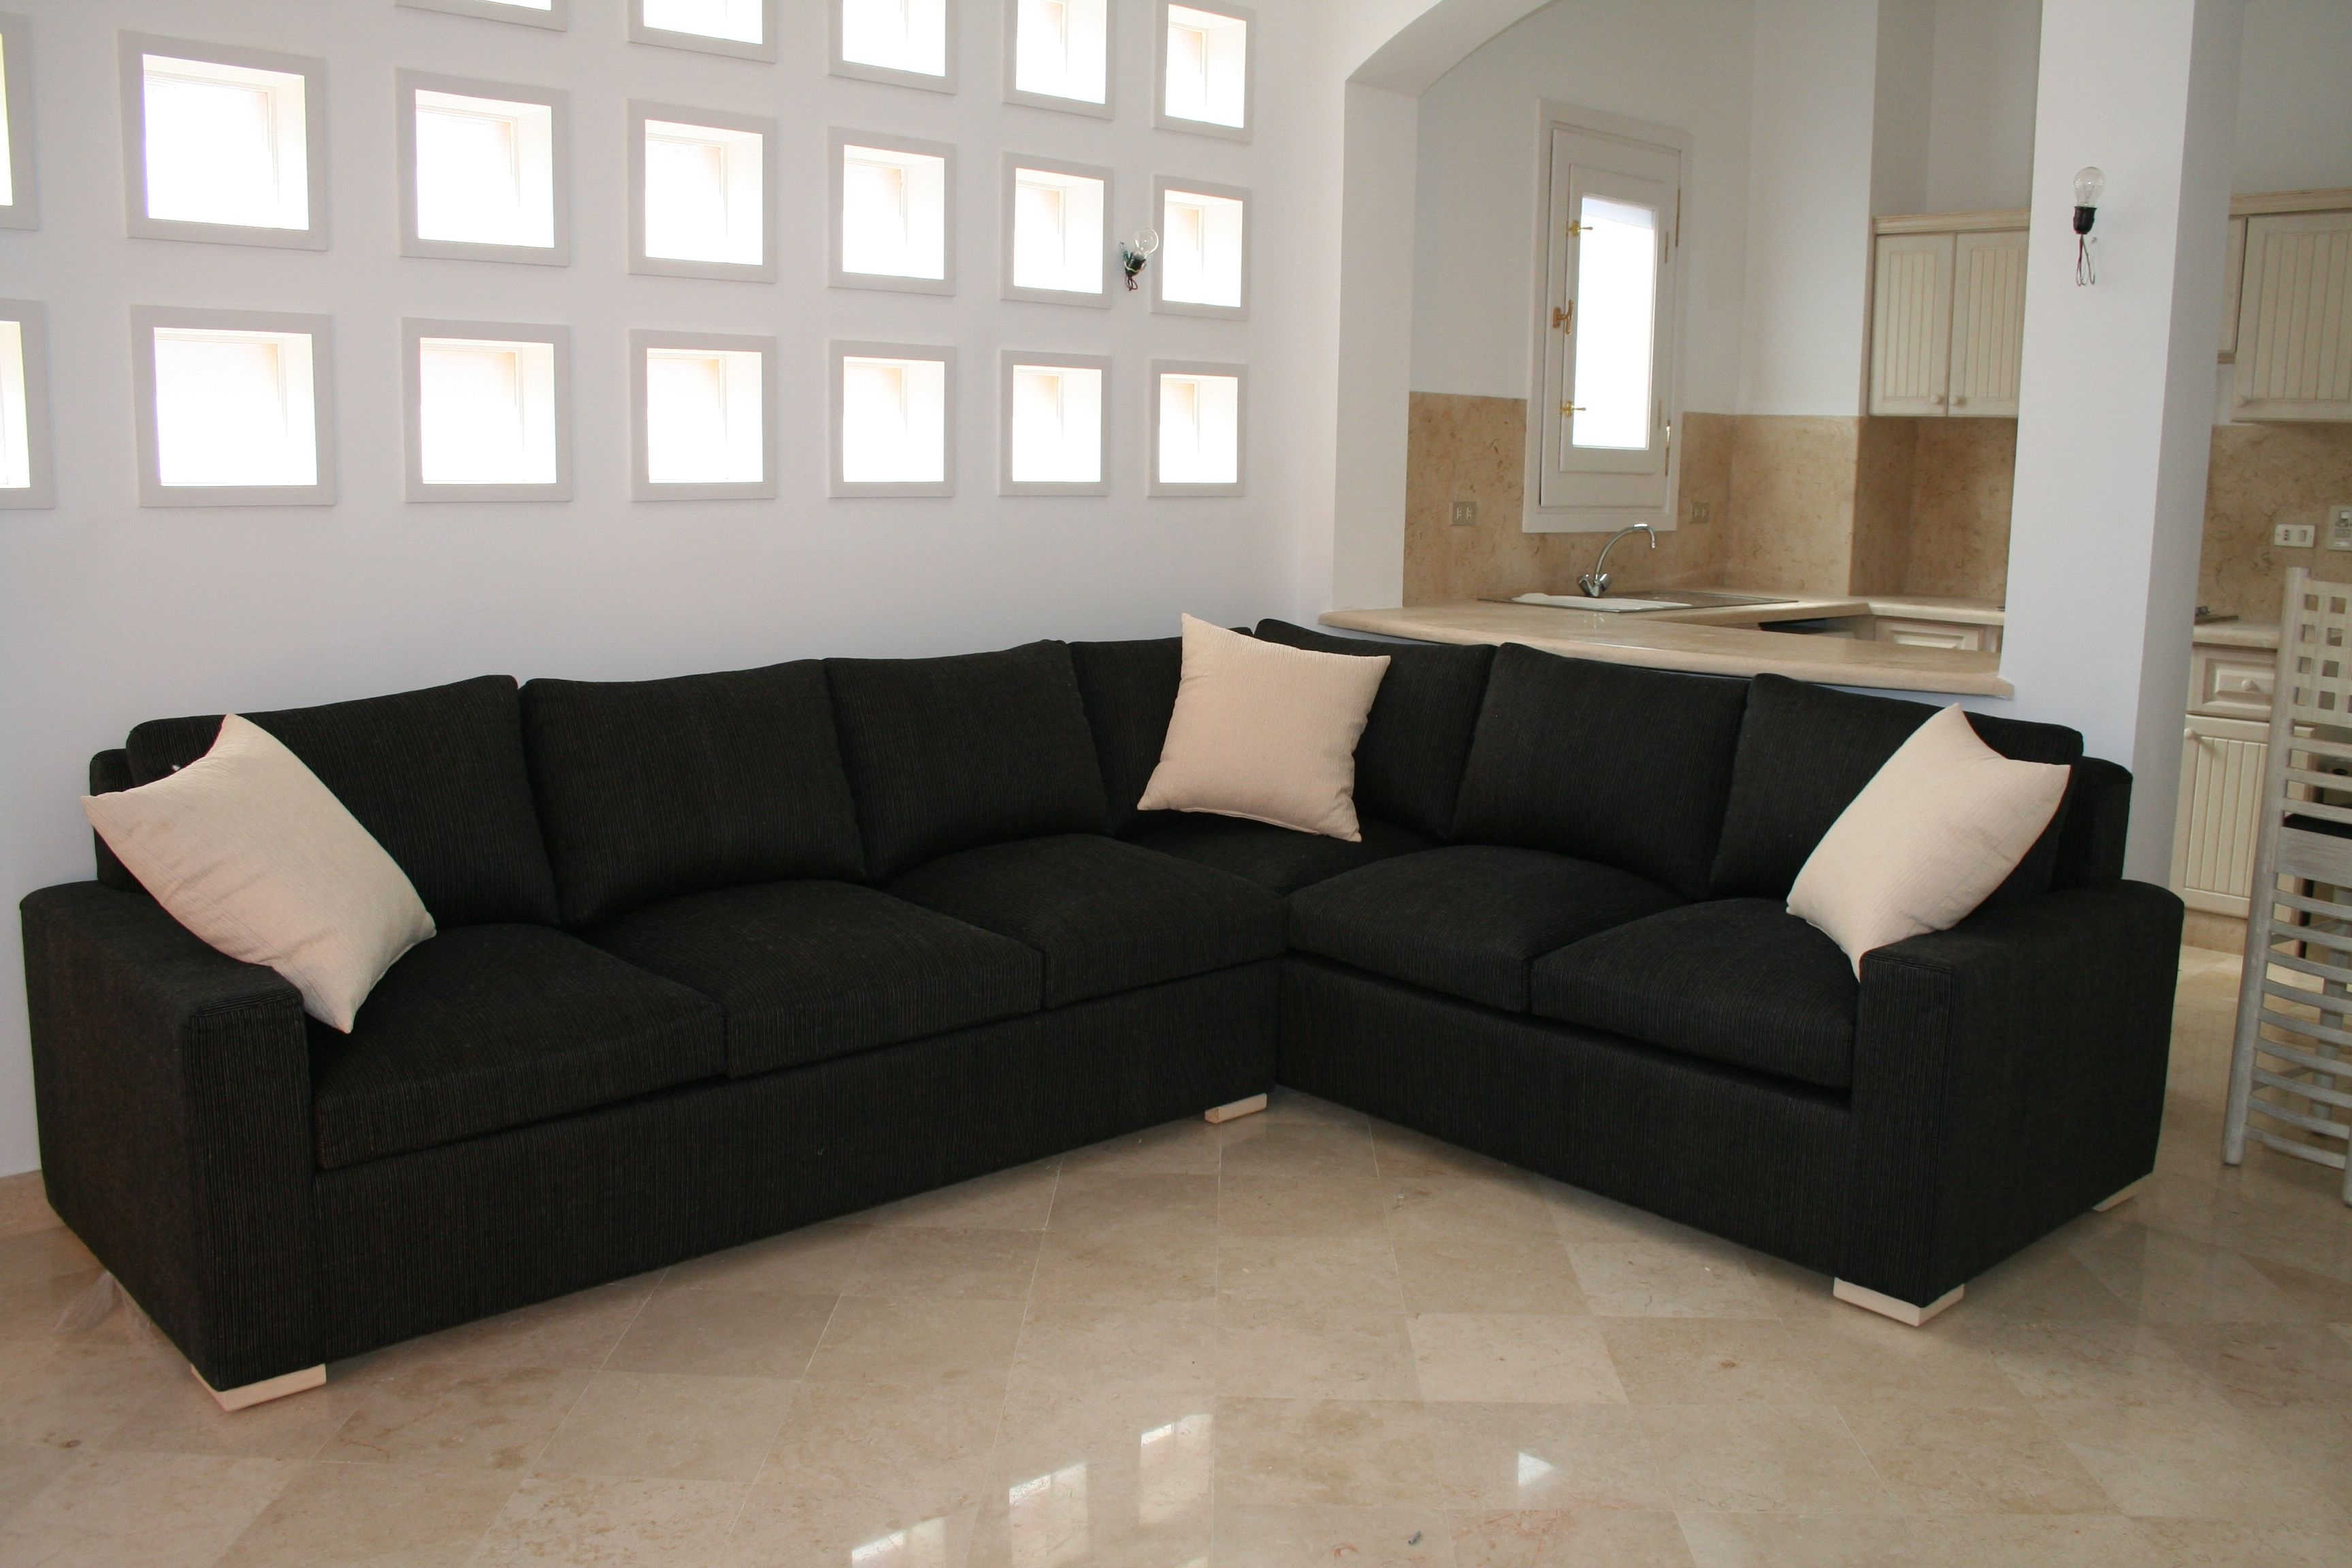 Nice L Shape Couch , Beautiful L Shape Couch 92 For Sofa Room Ideas Inside L Shaped Sofas (Photo 6 of 10)